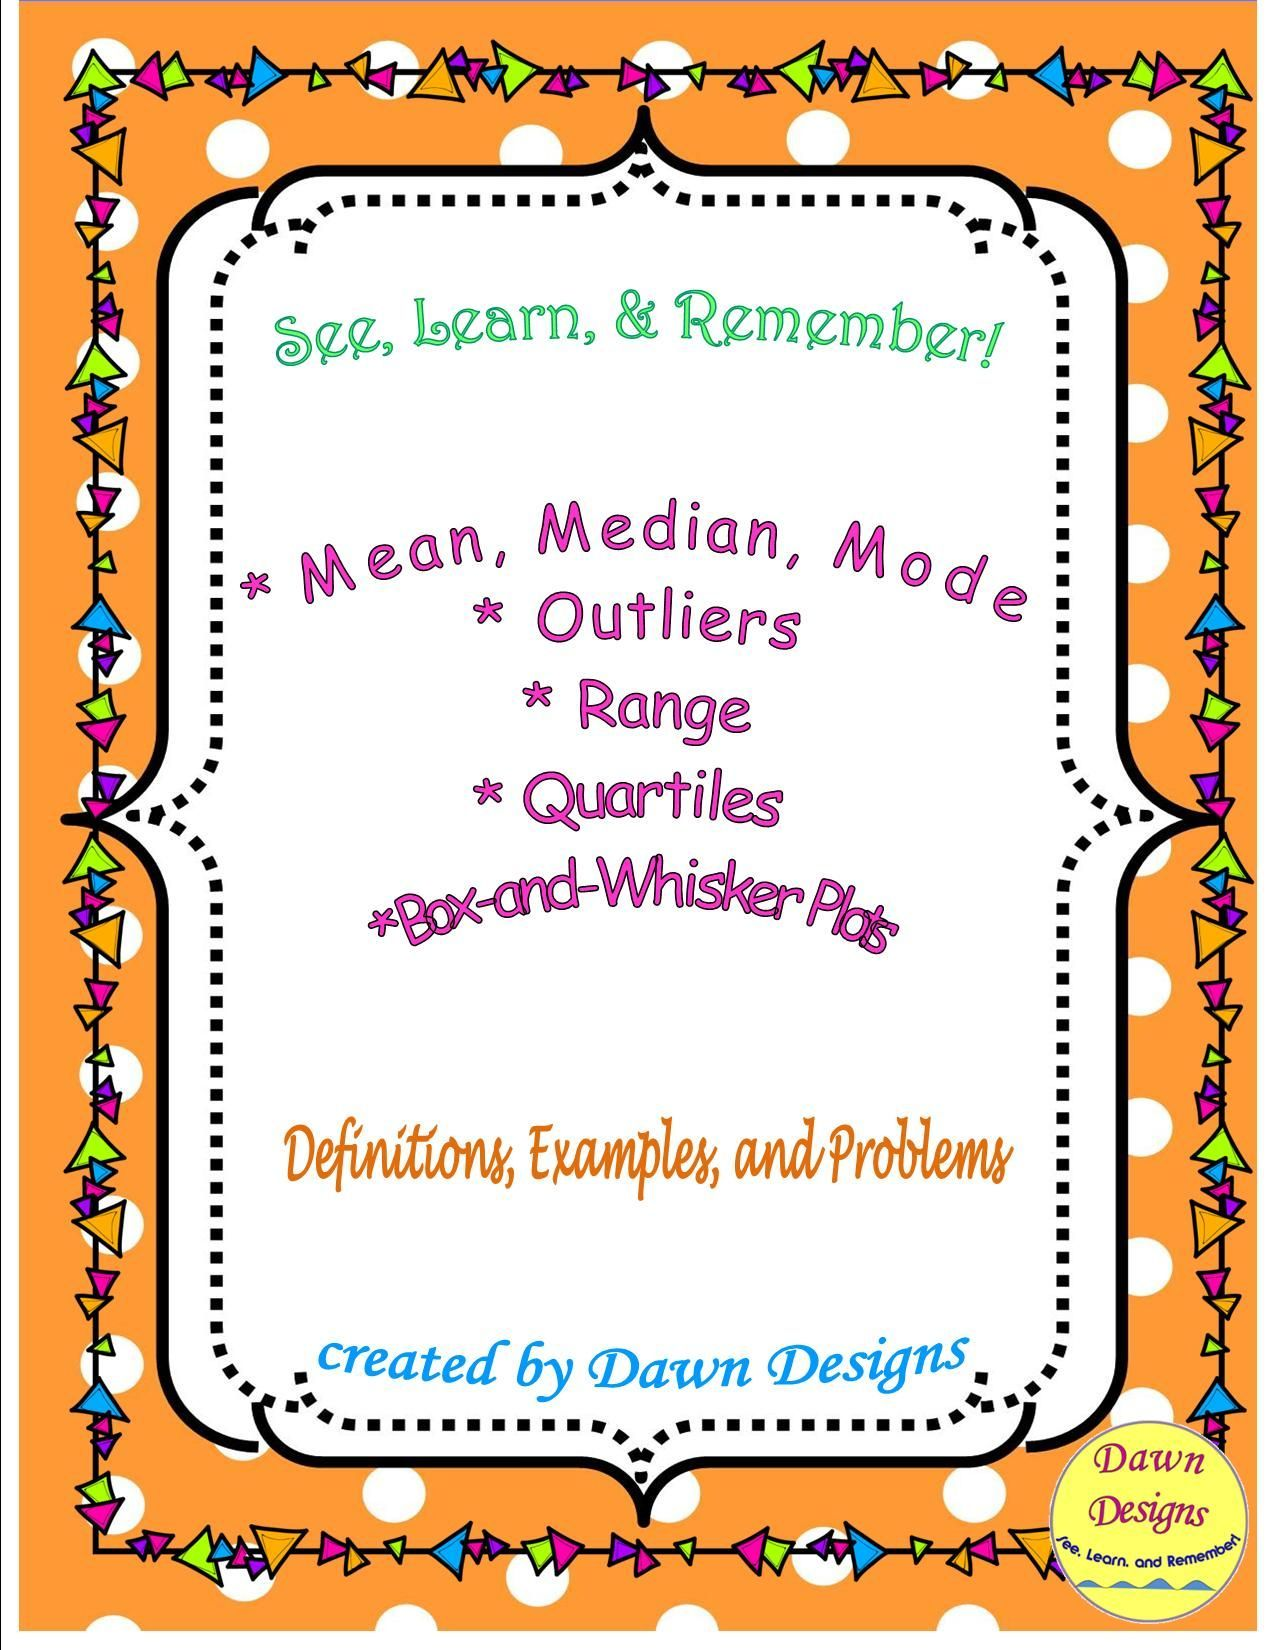 Statistics Mean Median Mode Outliers Range Quartiles